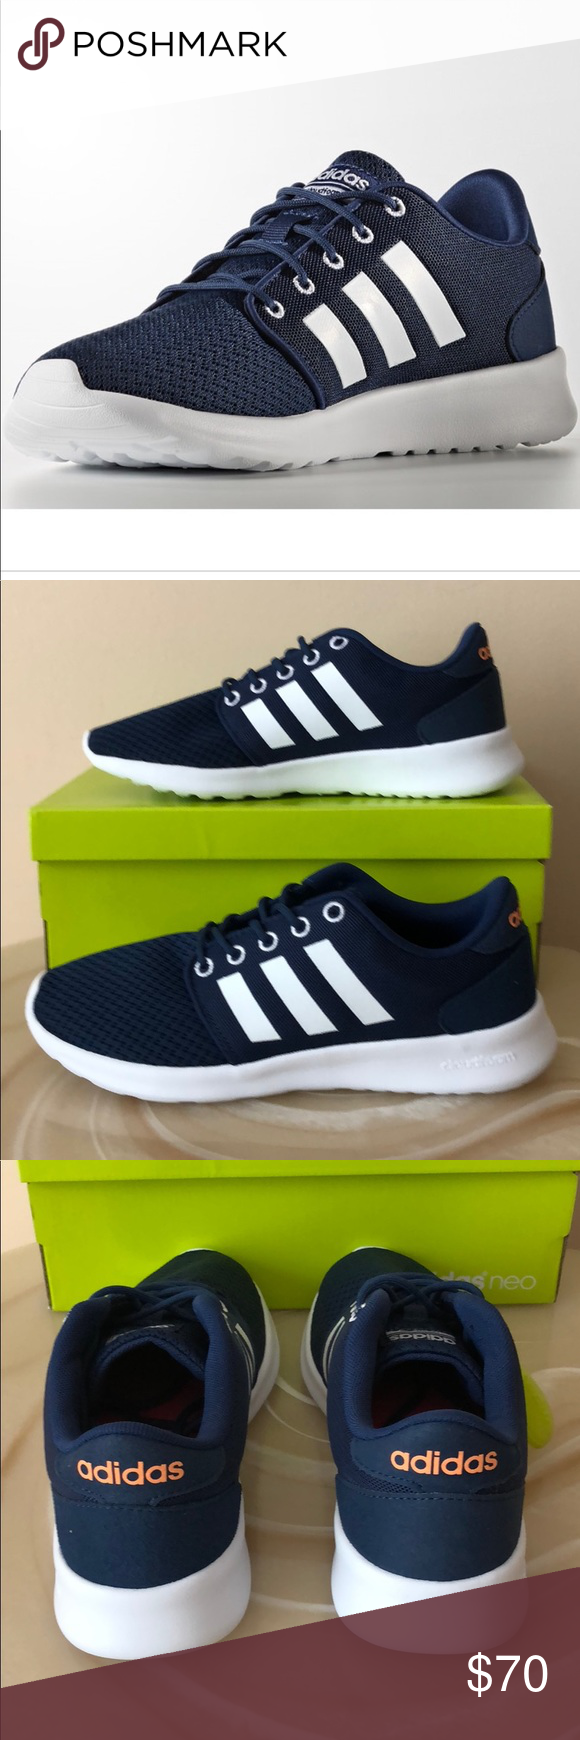 Adidas cloudfoam memory footbed shoes